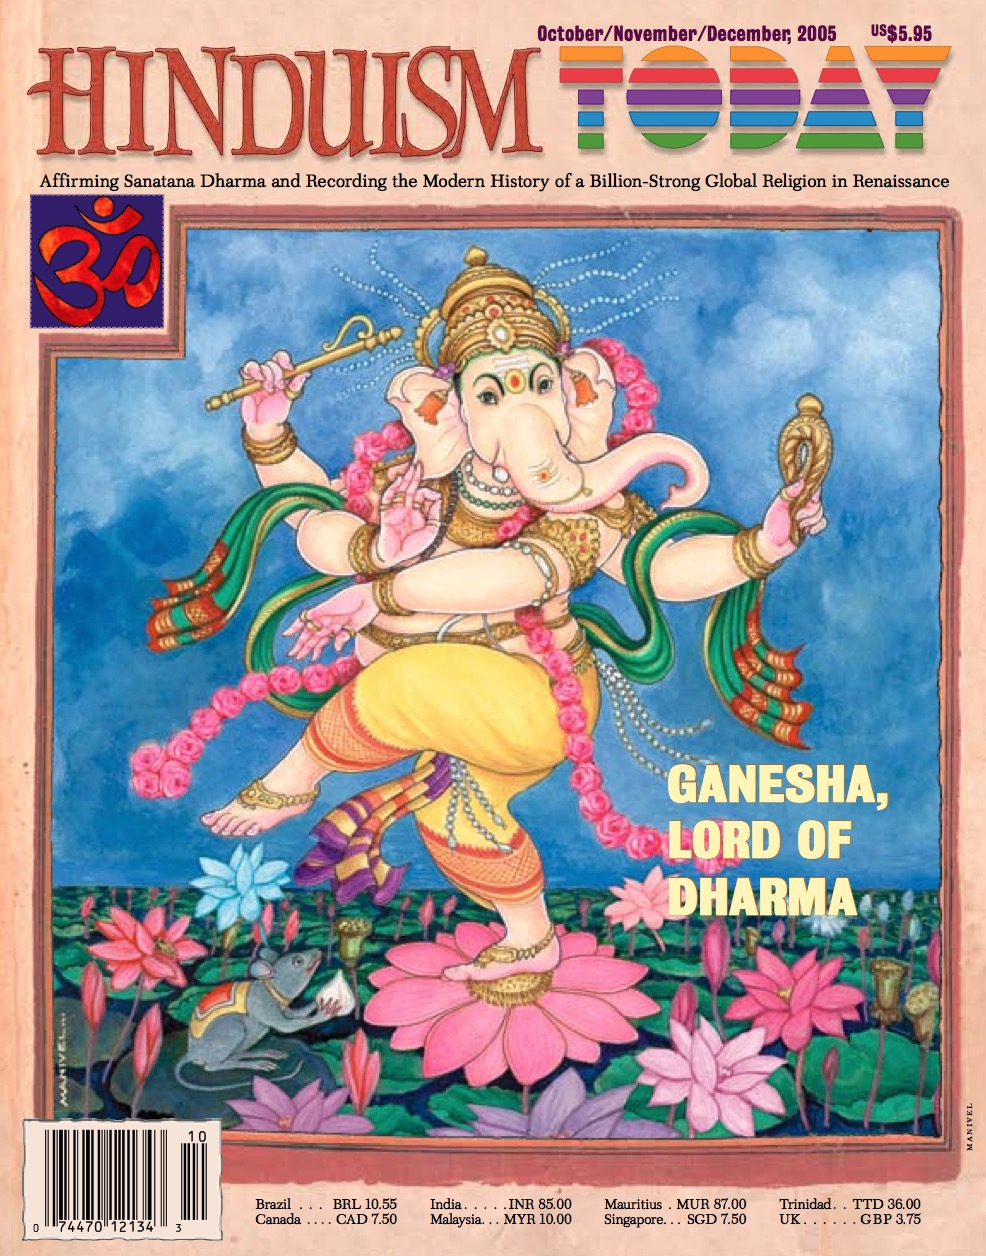 Hinduism Today Oct-Nov-Dec 2005